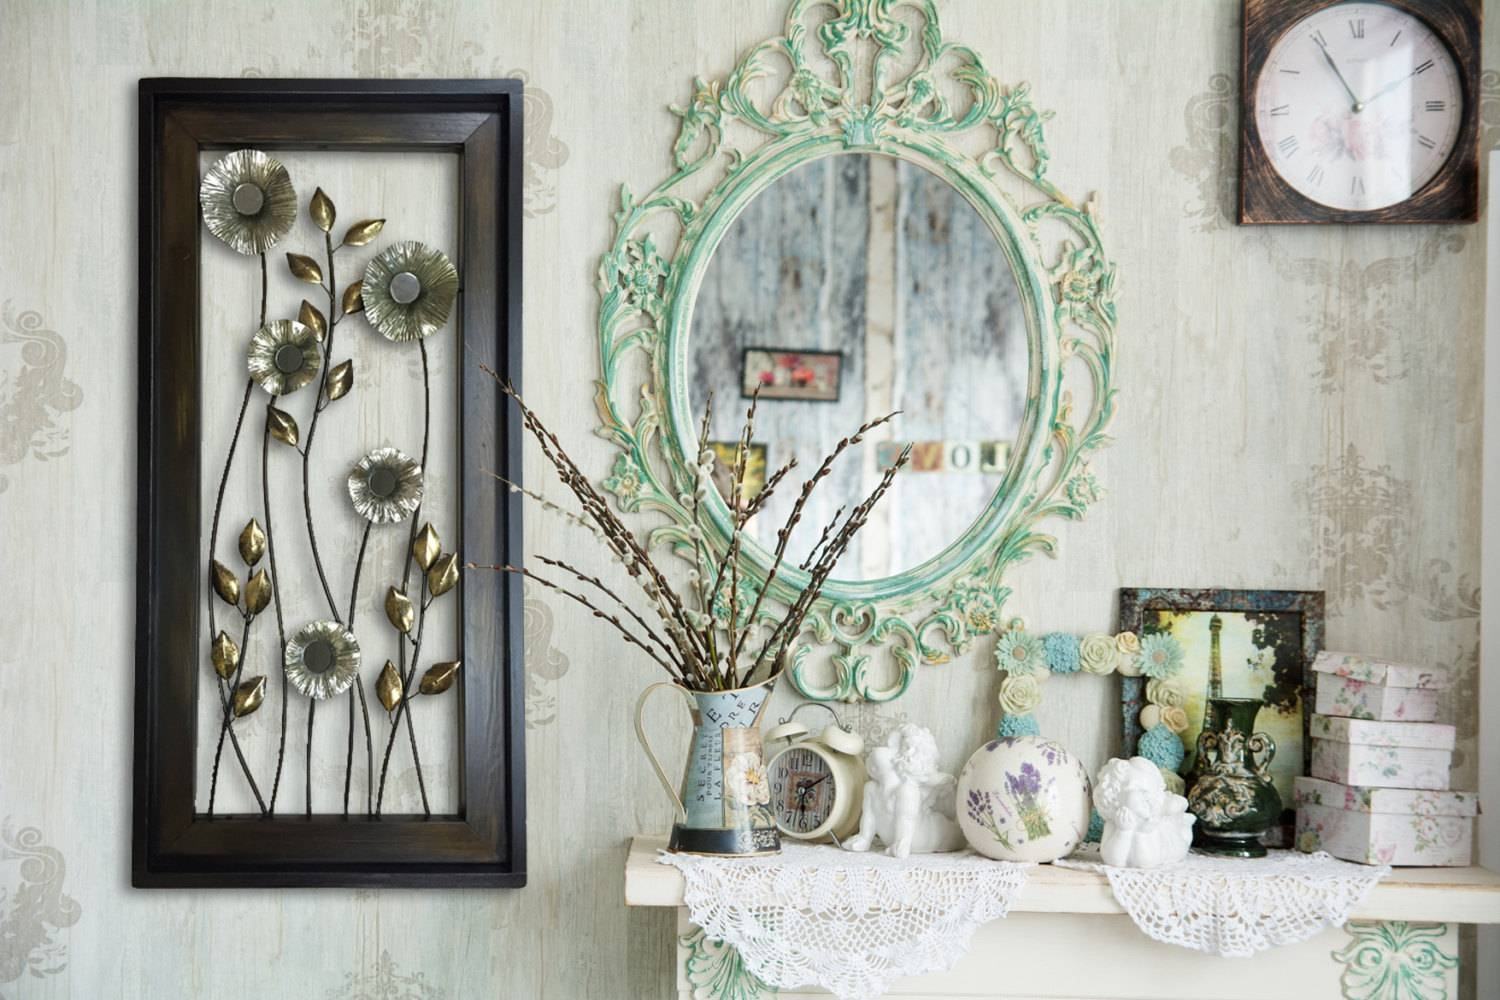 Metal Wall Art Wood Framed Flowers Mirrors Home Decor Large Within Current Wood Framed Metal Wall Art (View 9 of 20)